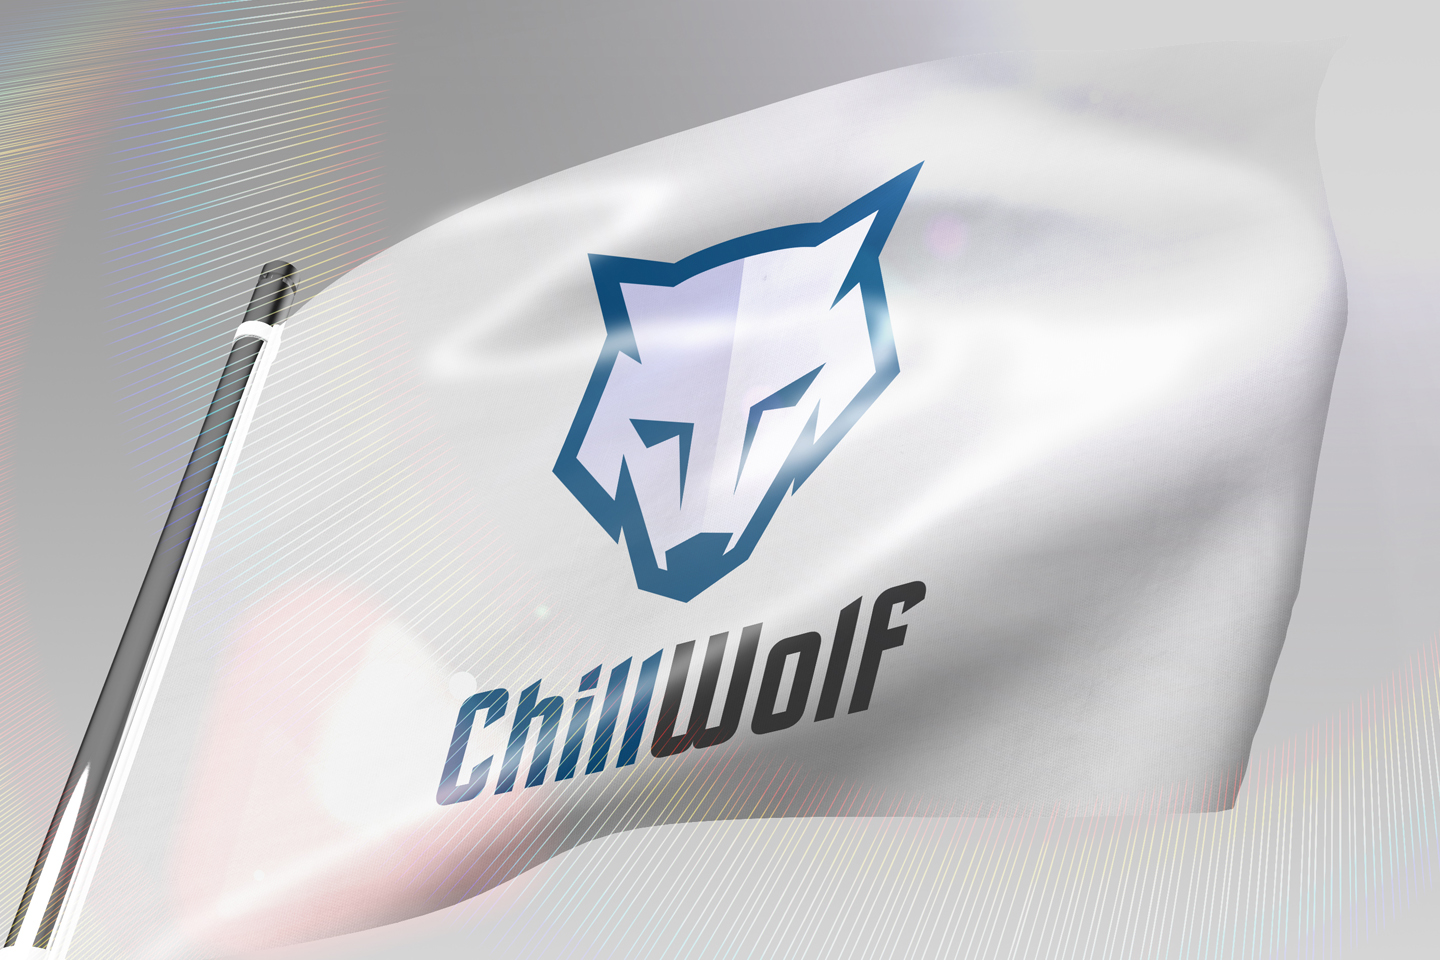 12Labels ChillWolf Coming Soon